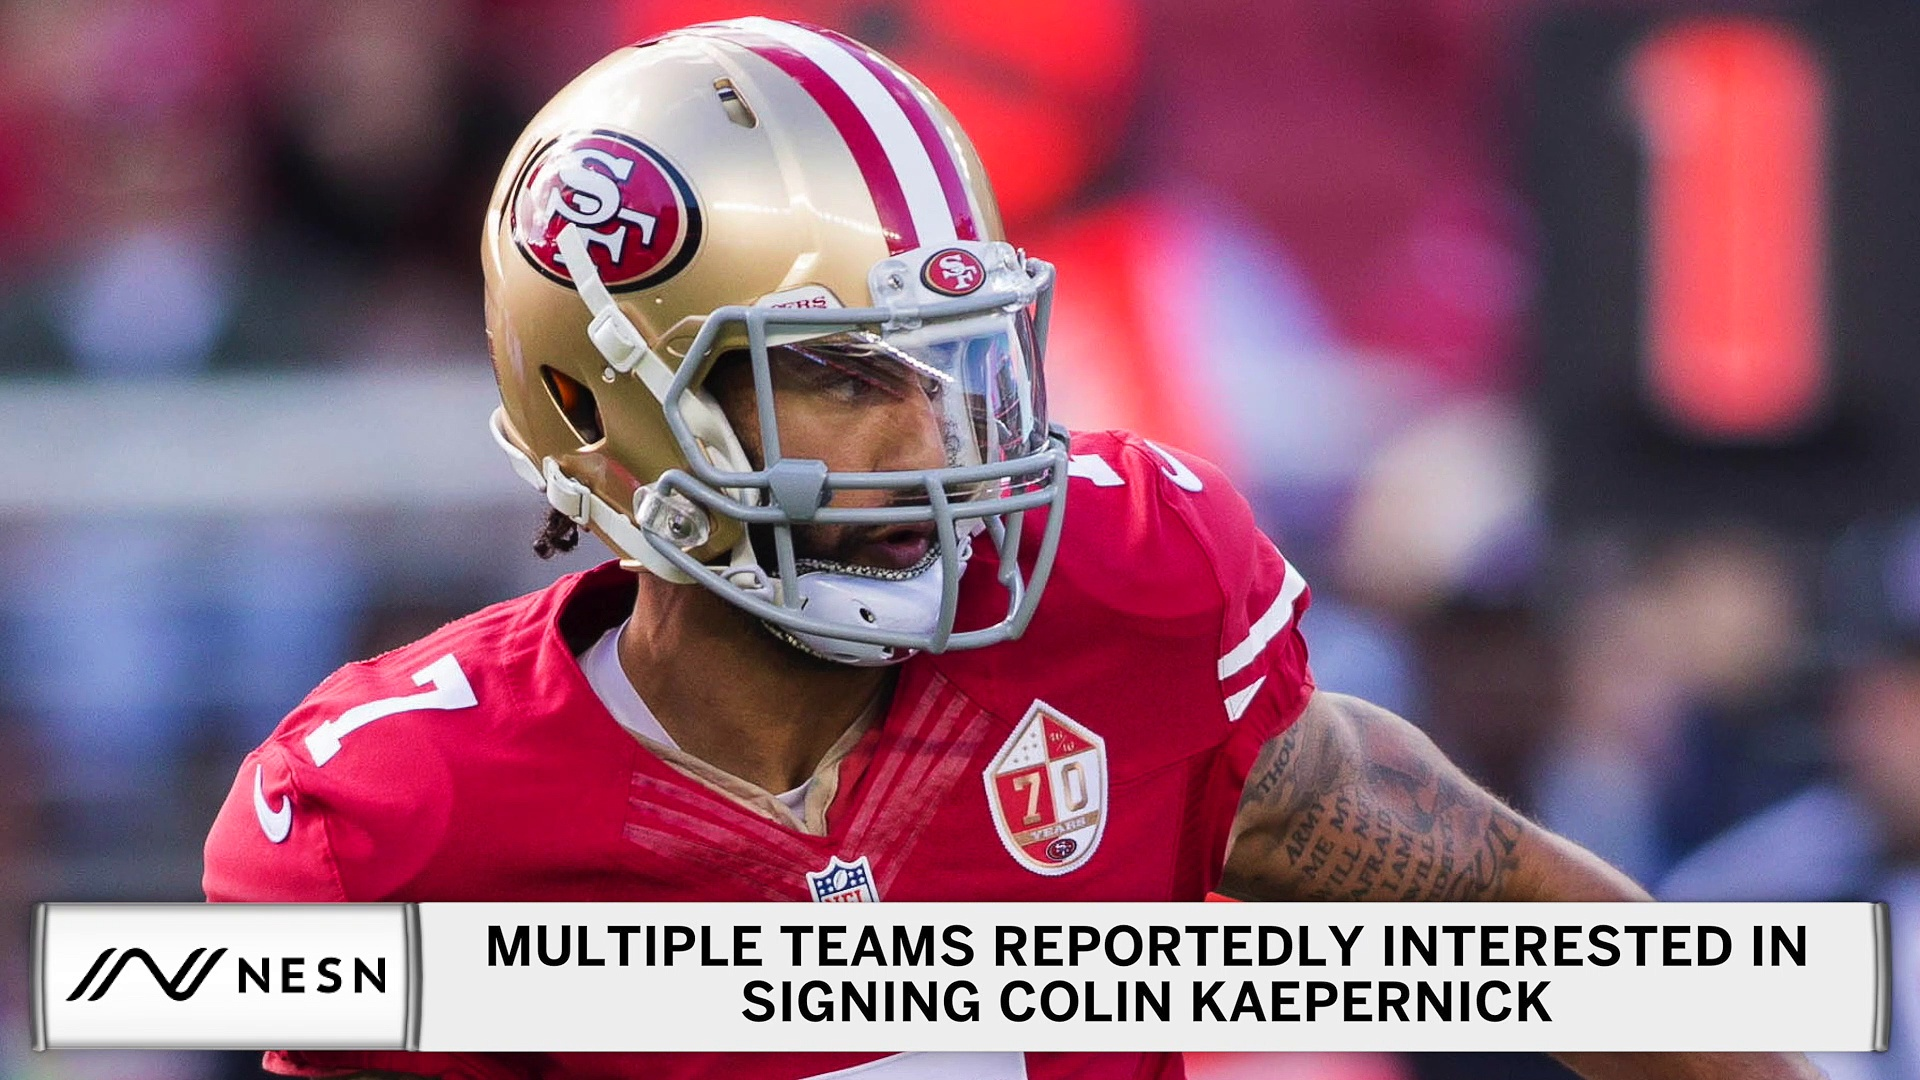 Colin Kaepernick Reportedly Drawing Interest From Multiple Teams